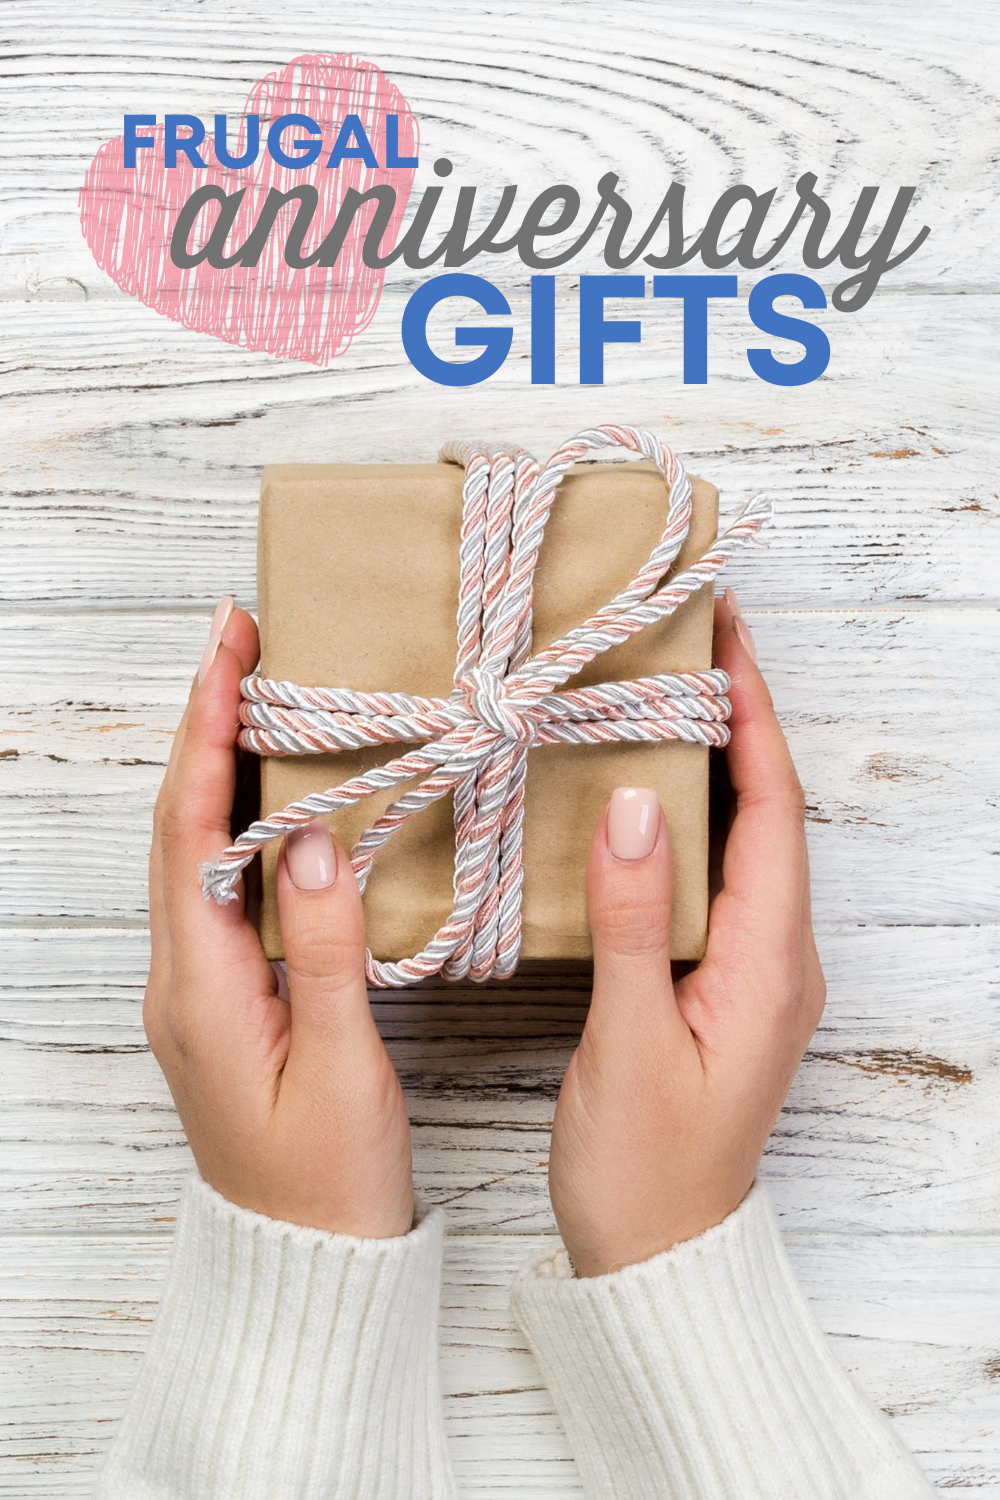 You're on a budget, but you want to celebrate one of the most special days you share with your partner. Check out this list of frugal anniversary gifts!